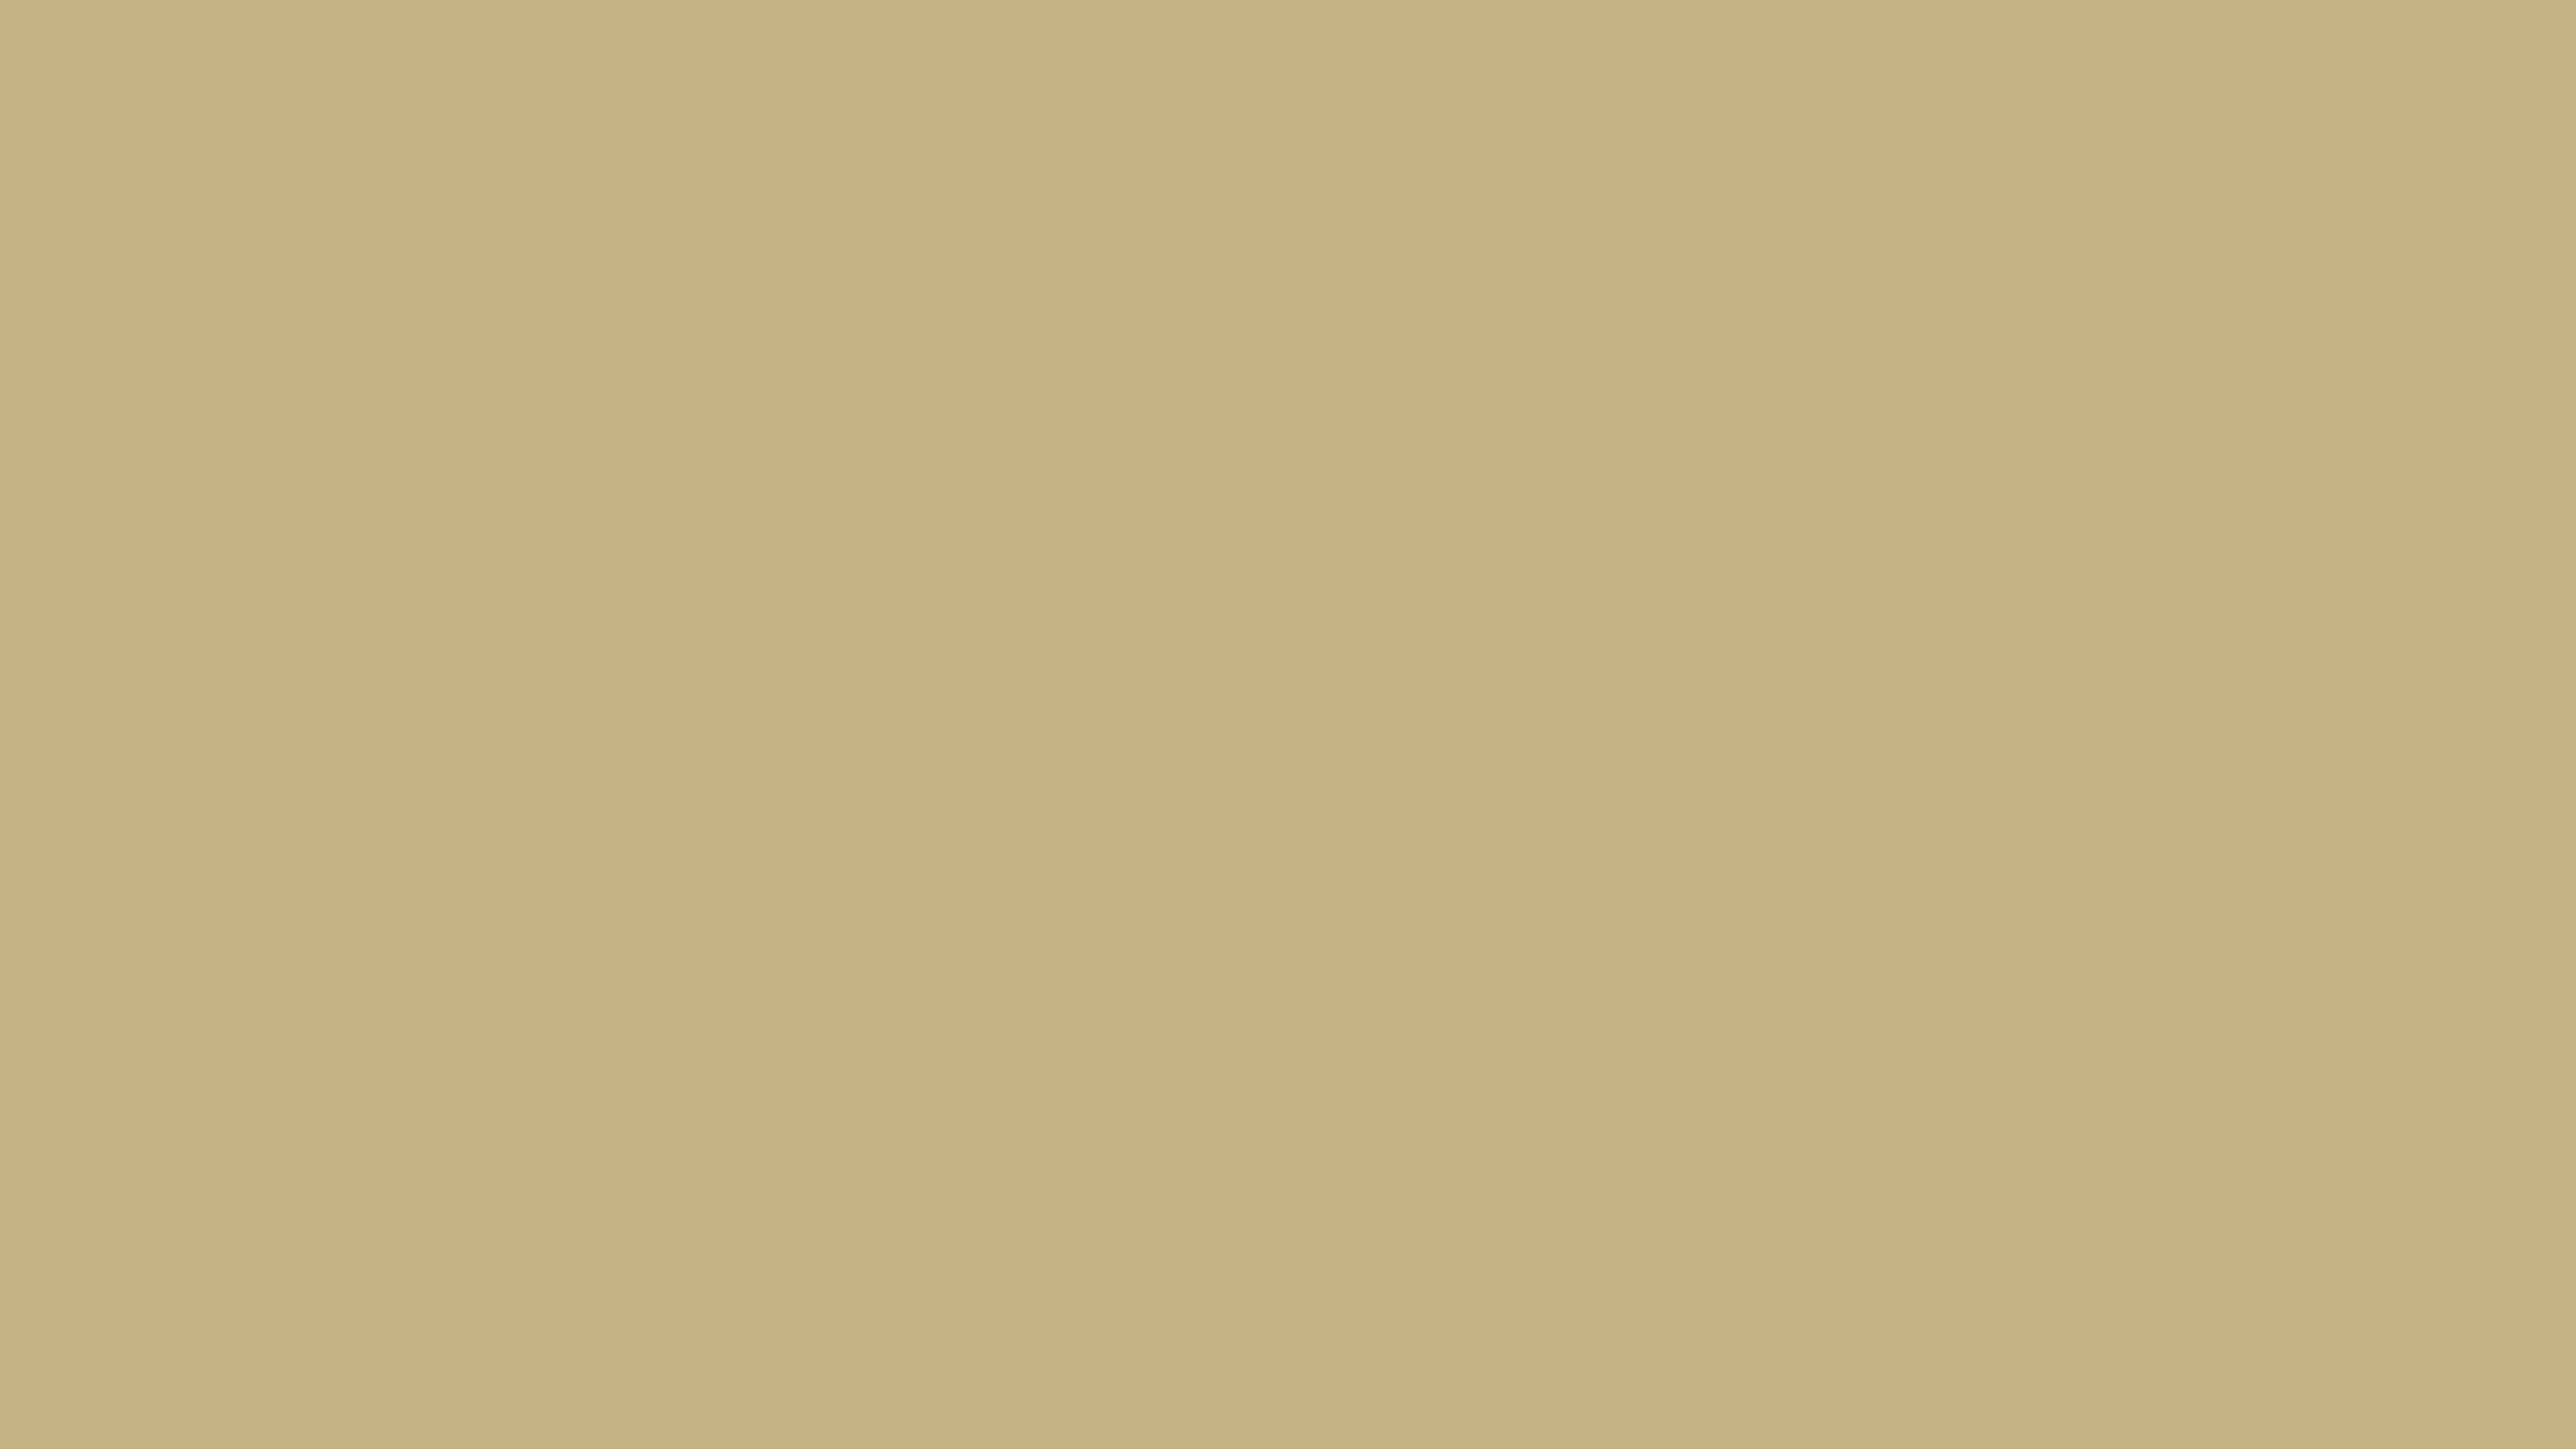 4096x2304 Sand Solid Color Background